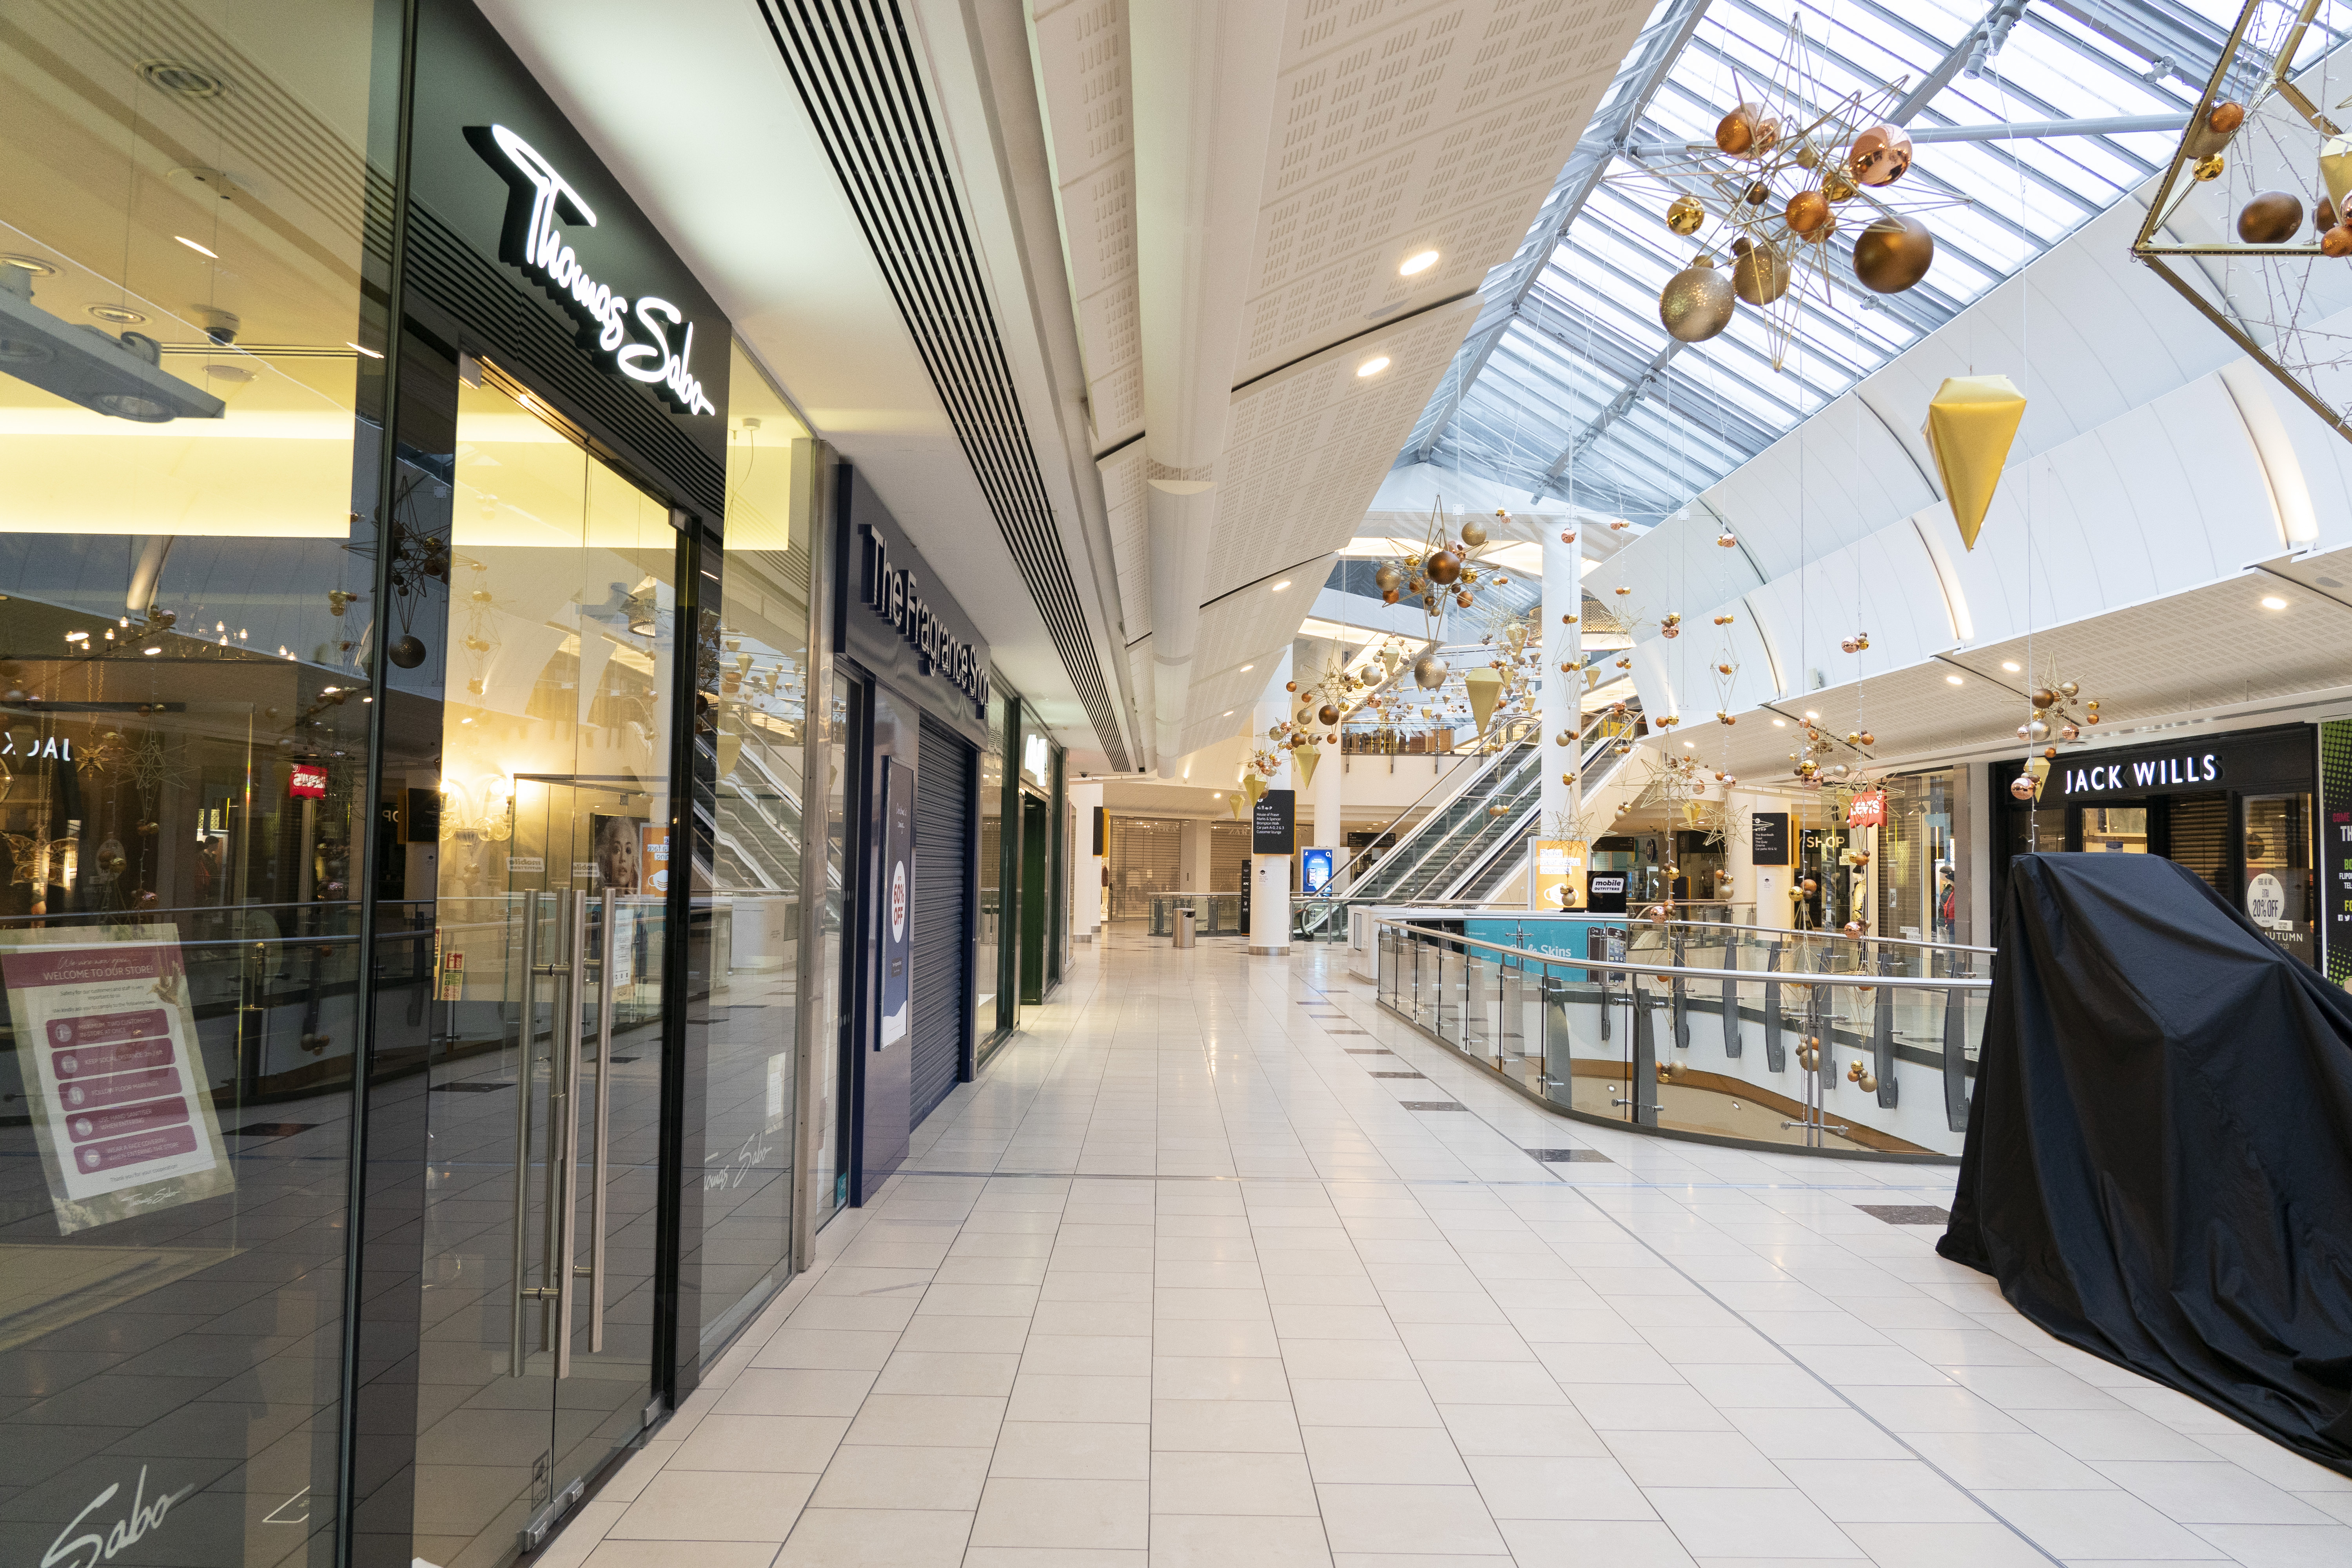 Lakeside shopping centre, meanwhile, was empty today